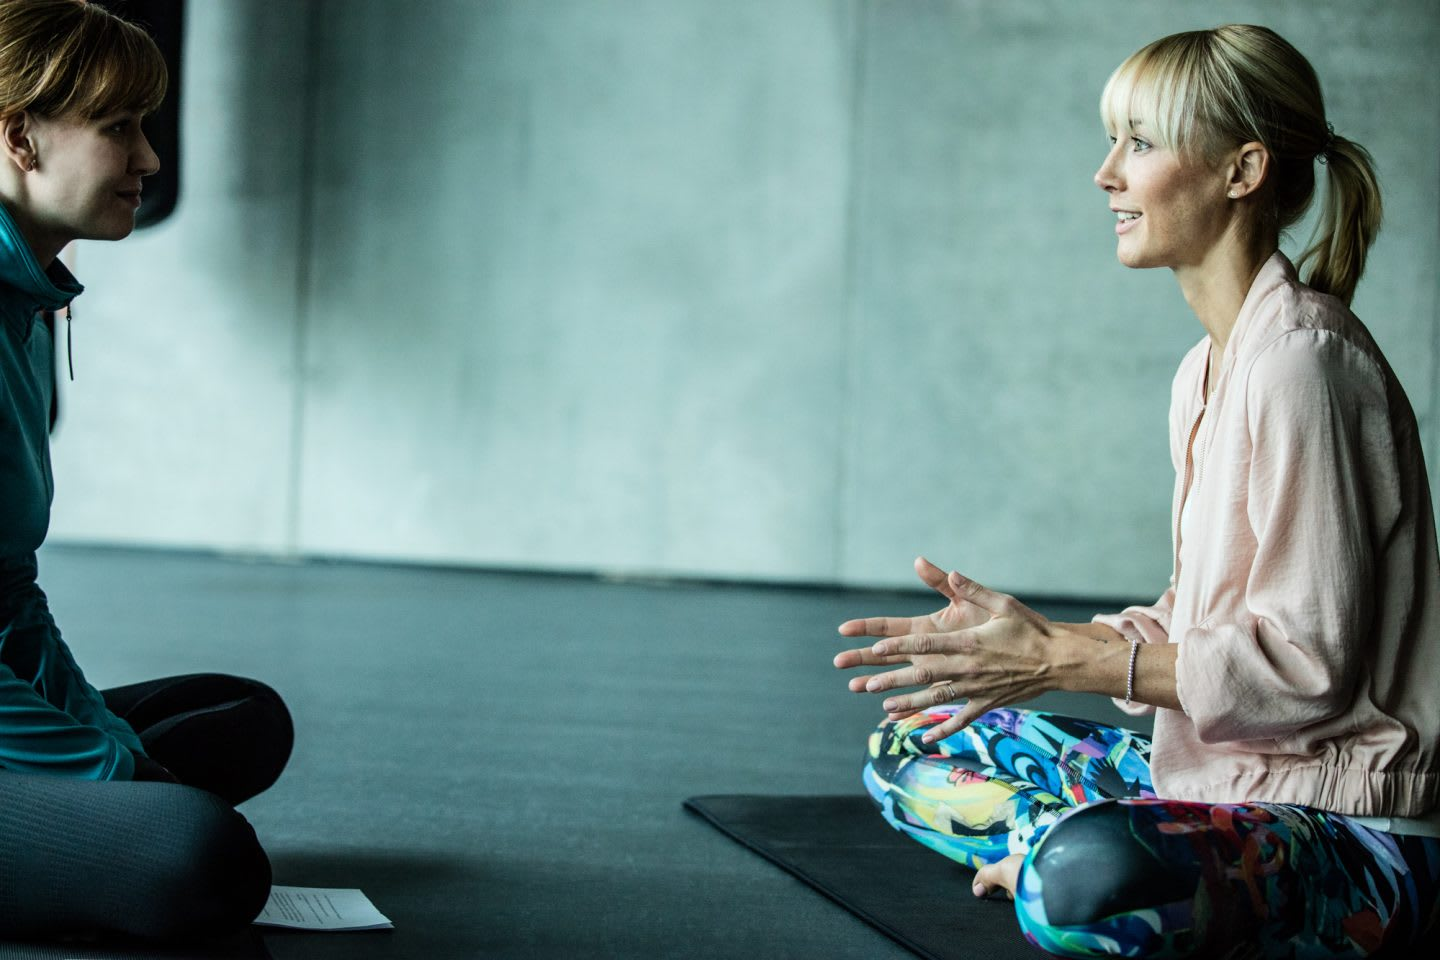 two women sitting in gym talking anna kleb reebok yoga entrepreneur